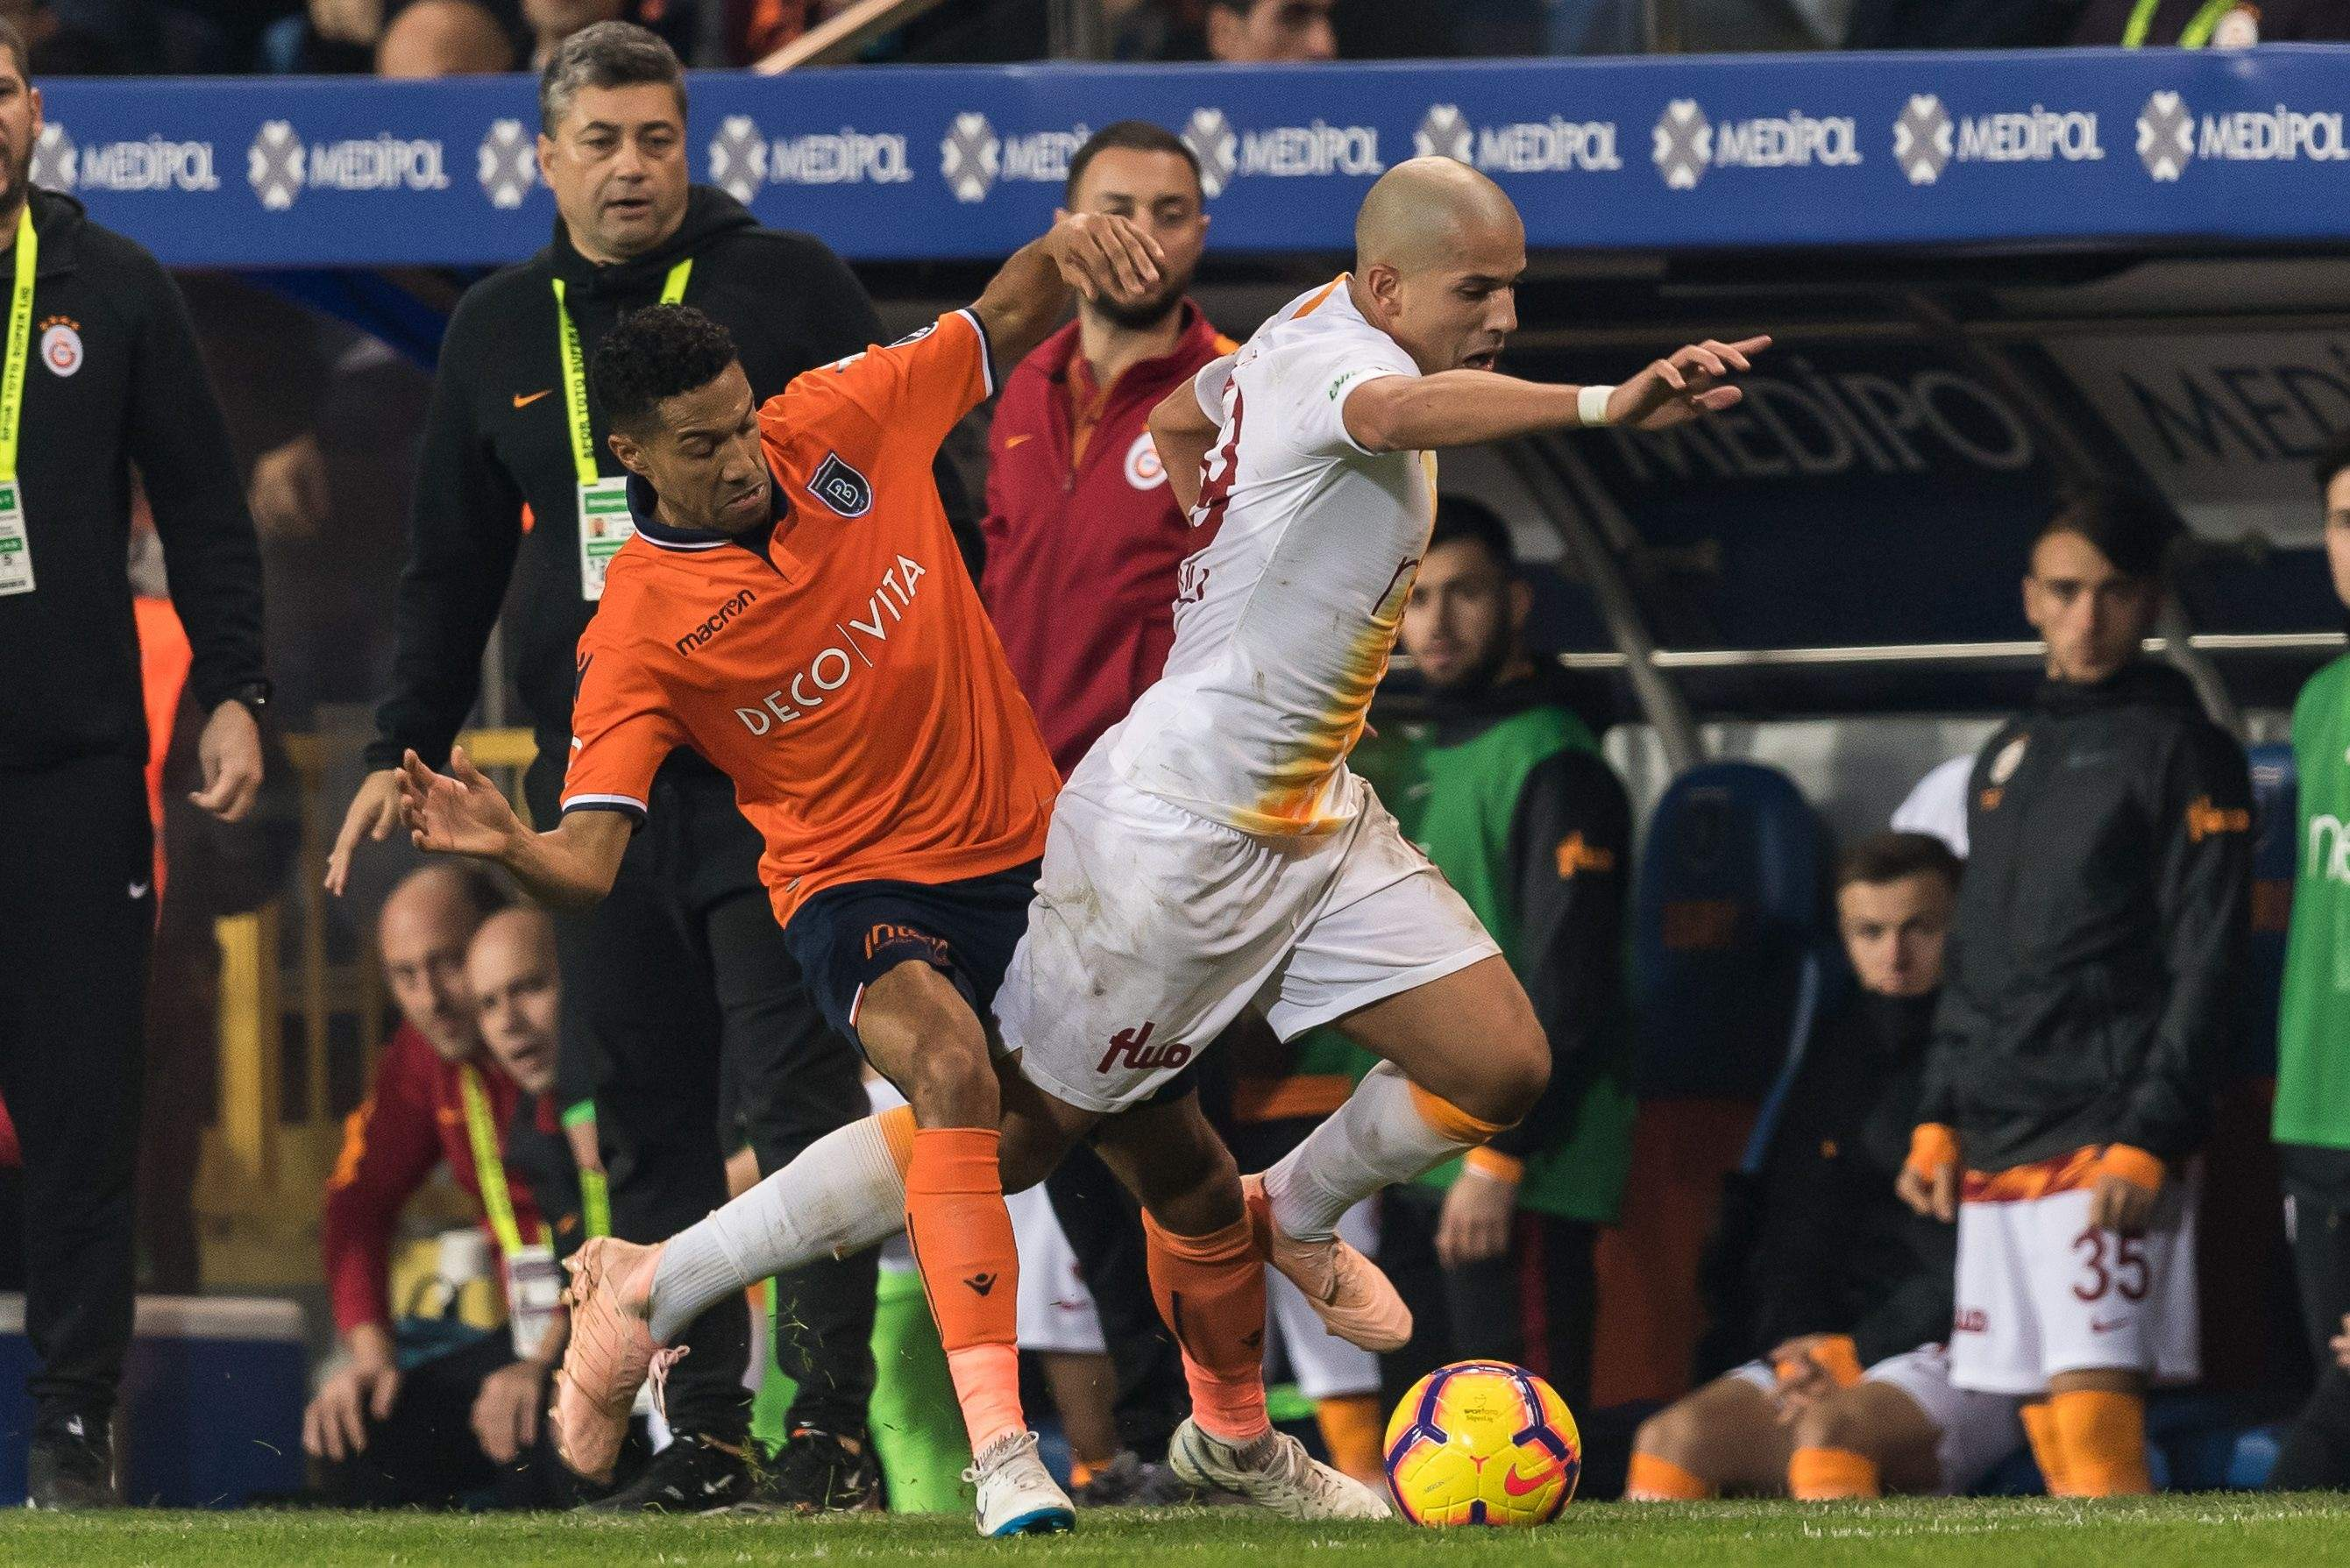 galatasaray-basaksehir-superliga-turquia-getty.jpg